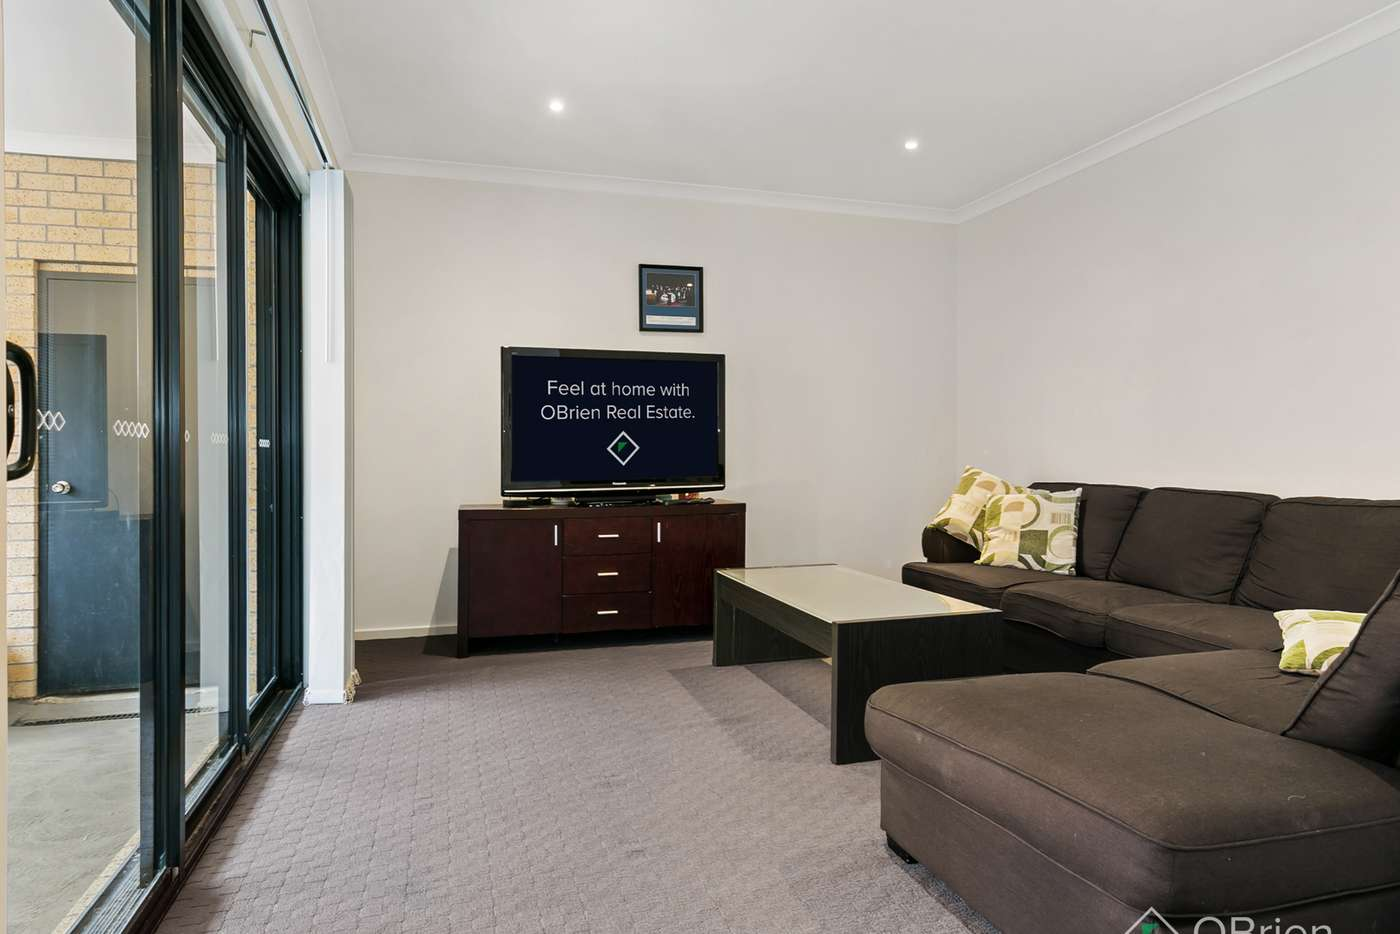 Fifth view of Homely house listing, 1 Benmar Place, Lyndhurst VIC 3975